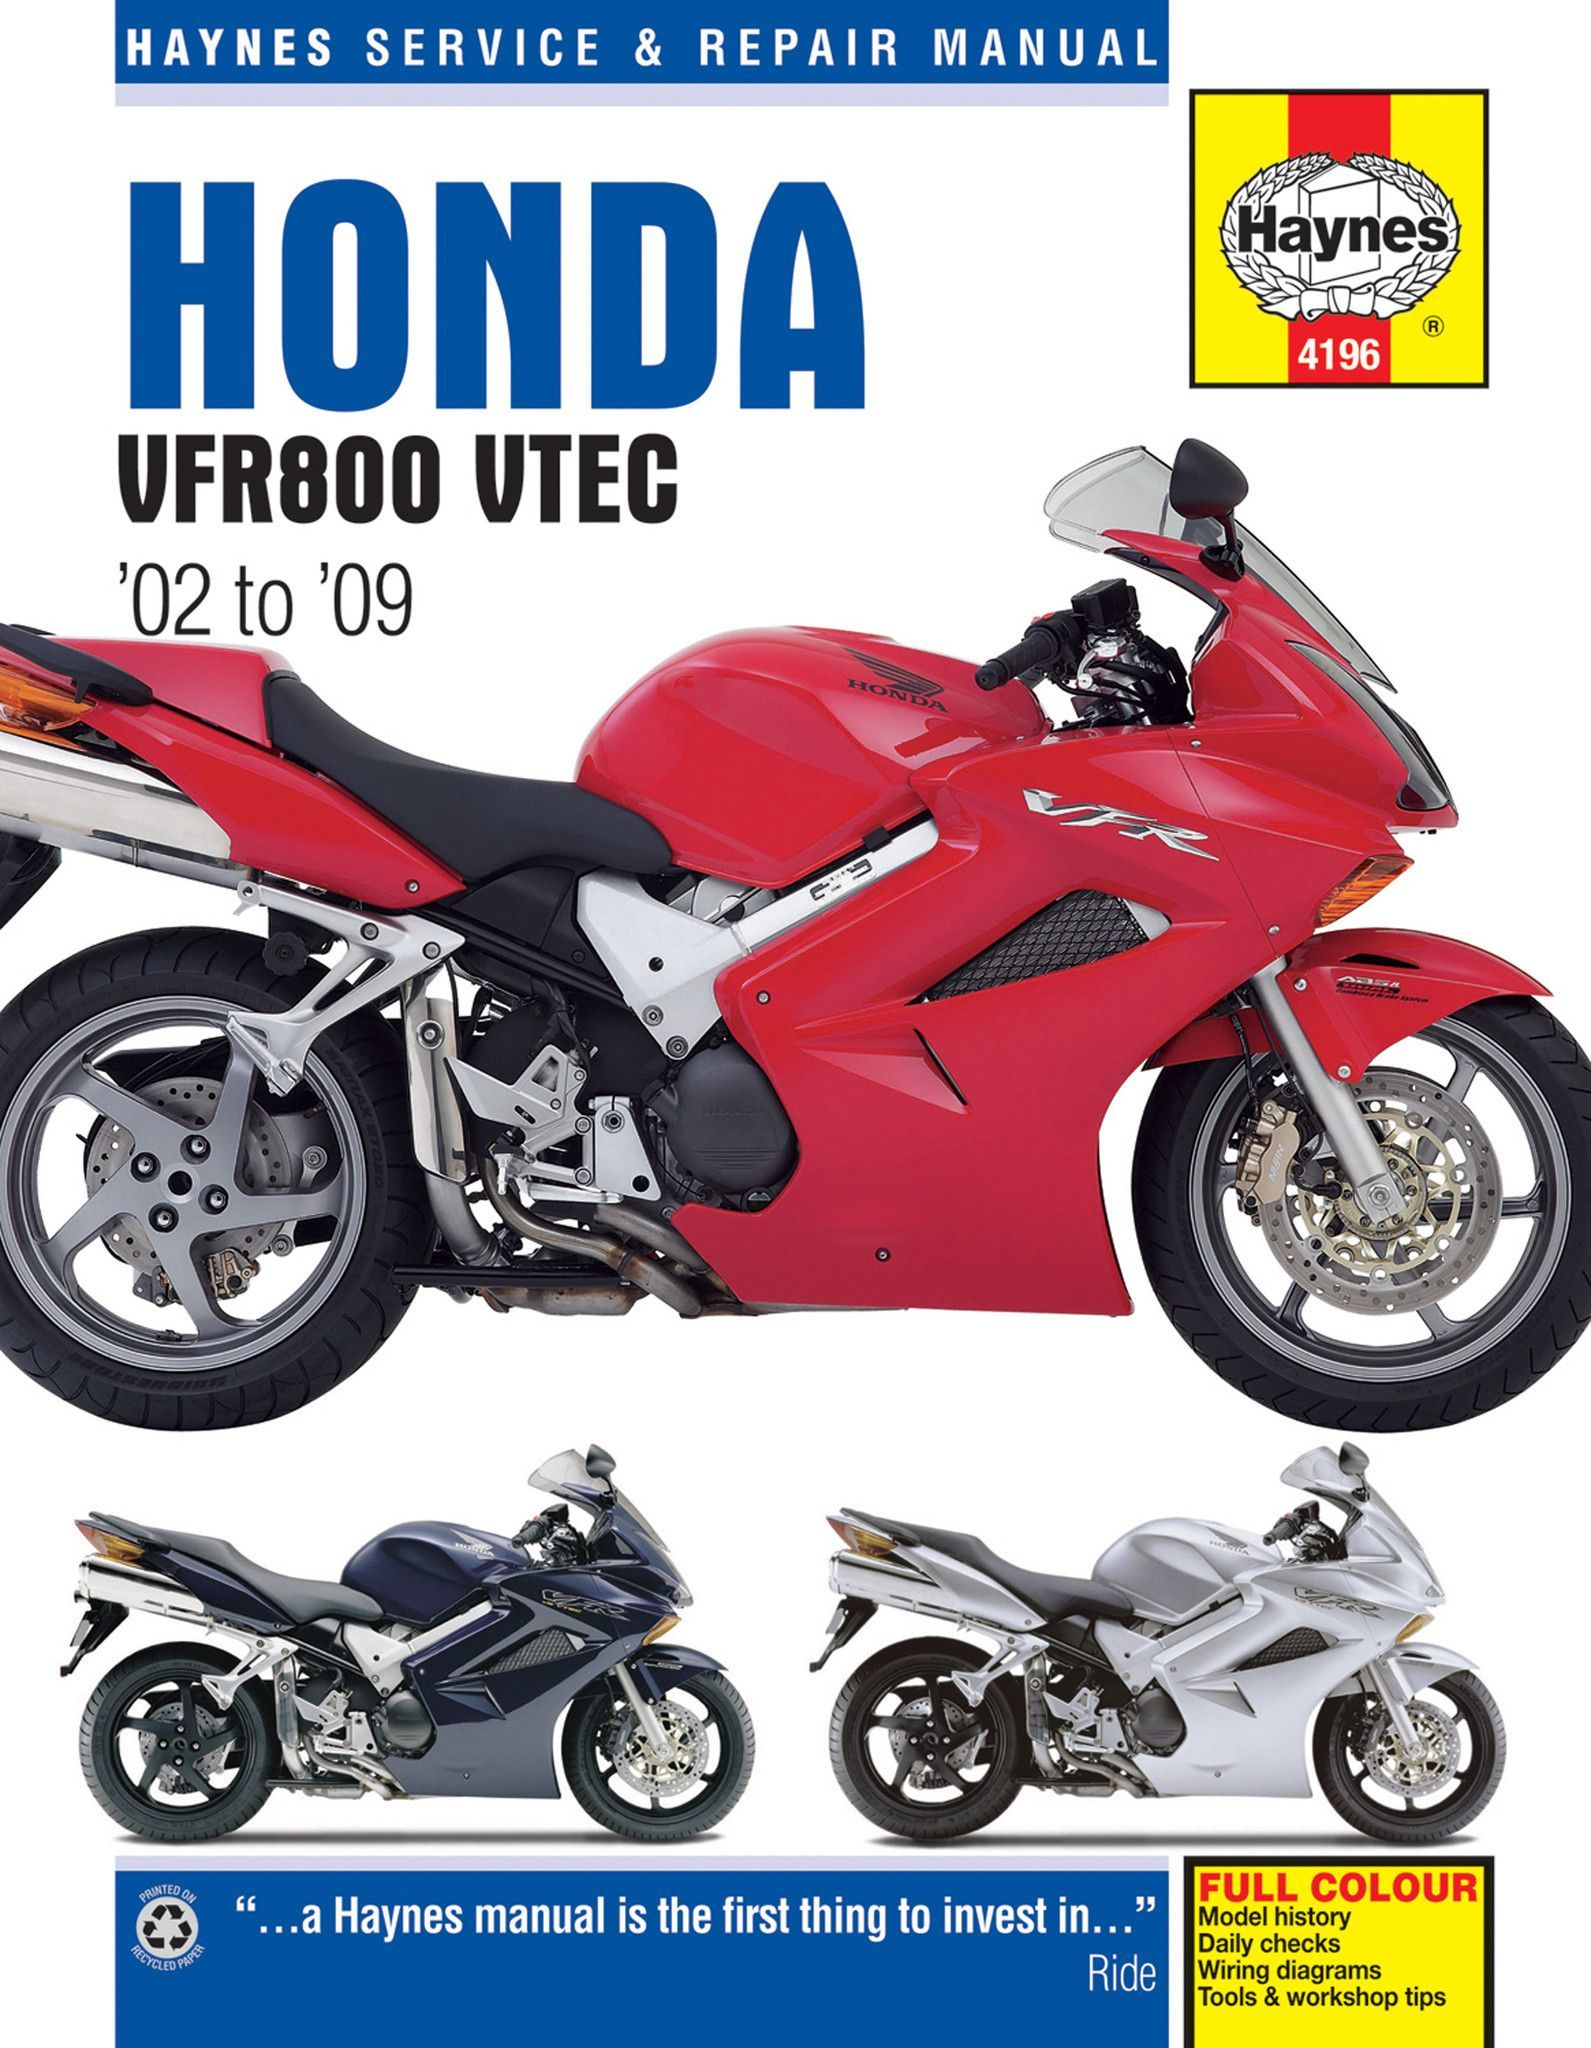 Haynes M4196 Repair Manual for 2002-09 Honda VFR800 VTEC 782cc